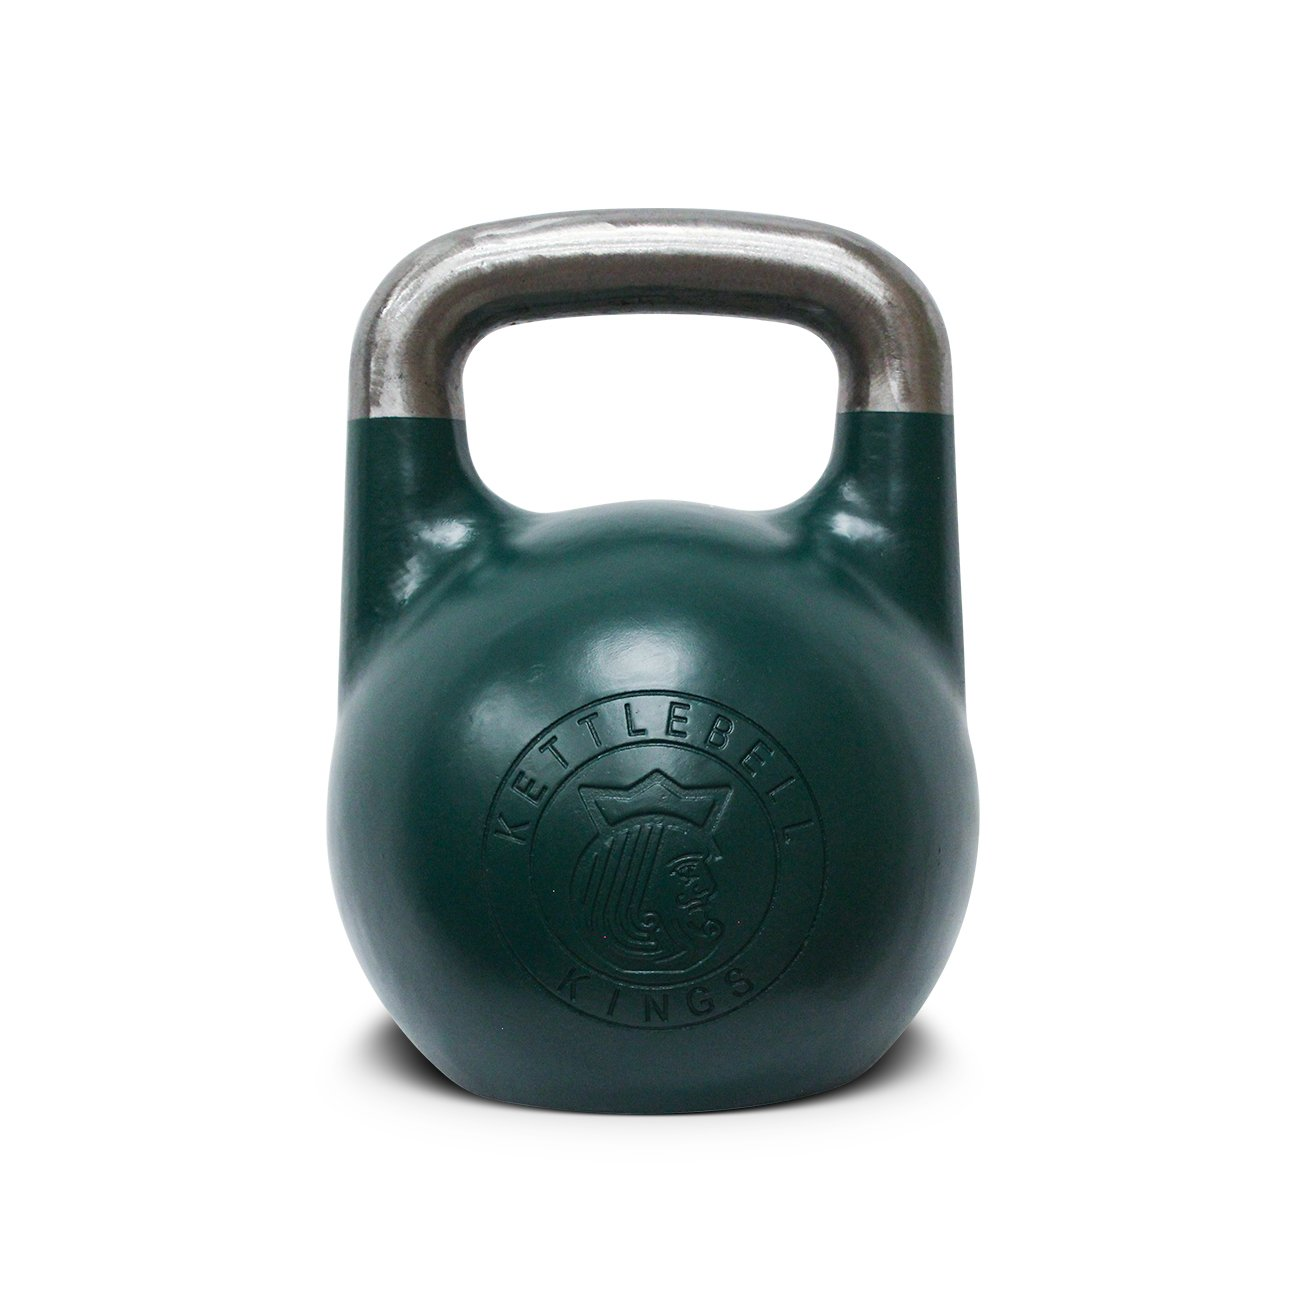 Kettlebell Kings | Competition Kettlebell Weights | Kettlebell Sets for Women & Men | Designed for Comfort in High Repetition Workouts | Superior Balance for Better Workouts (53)